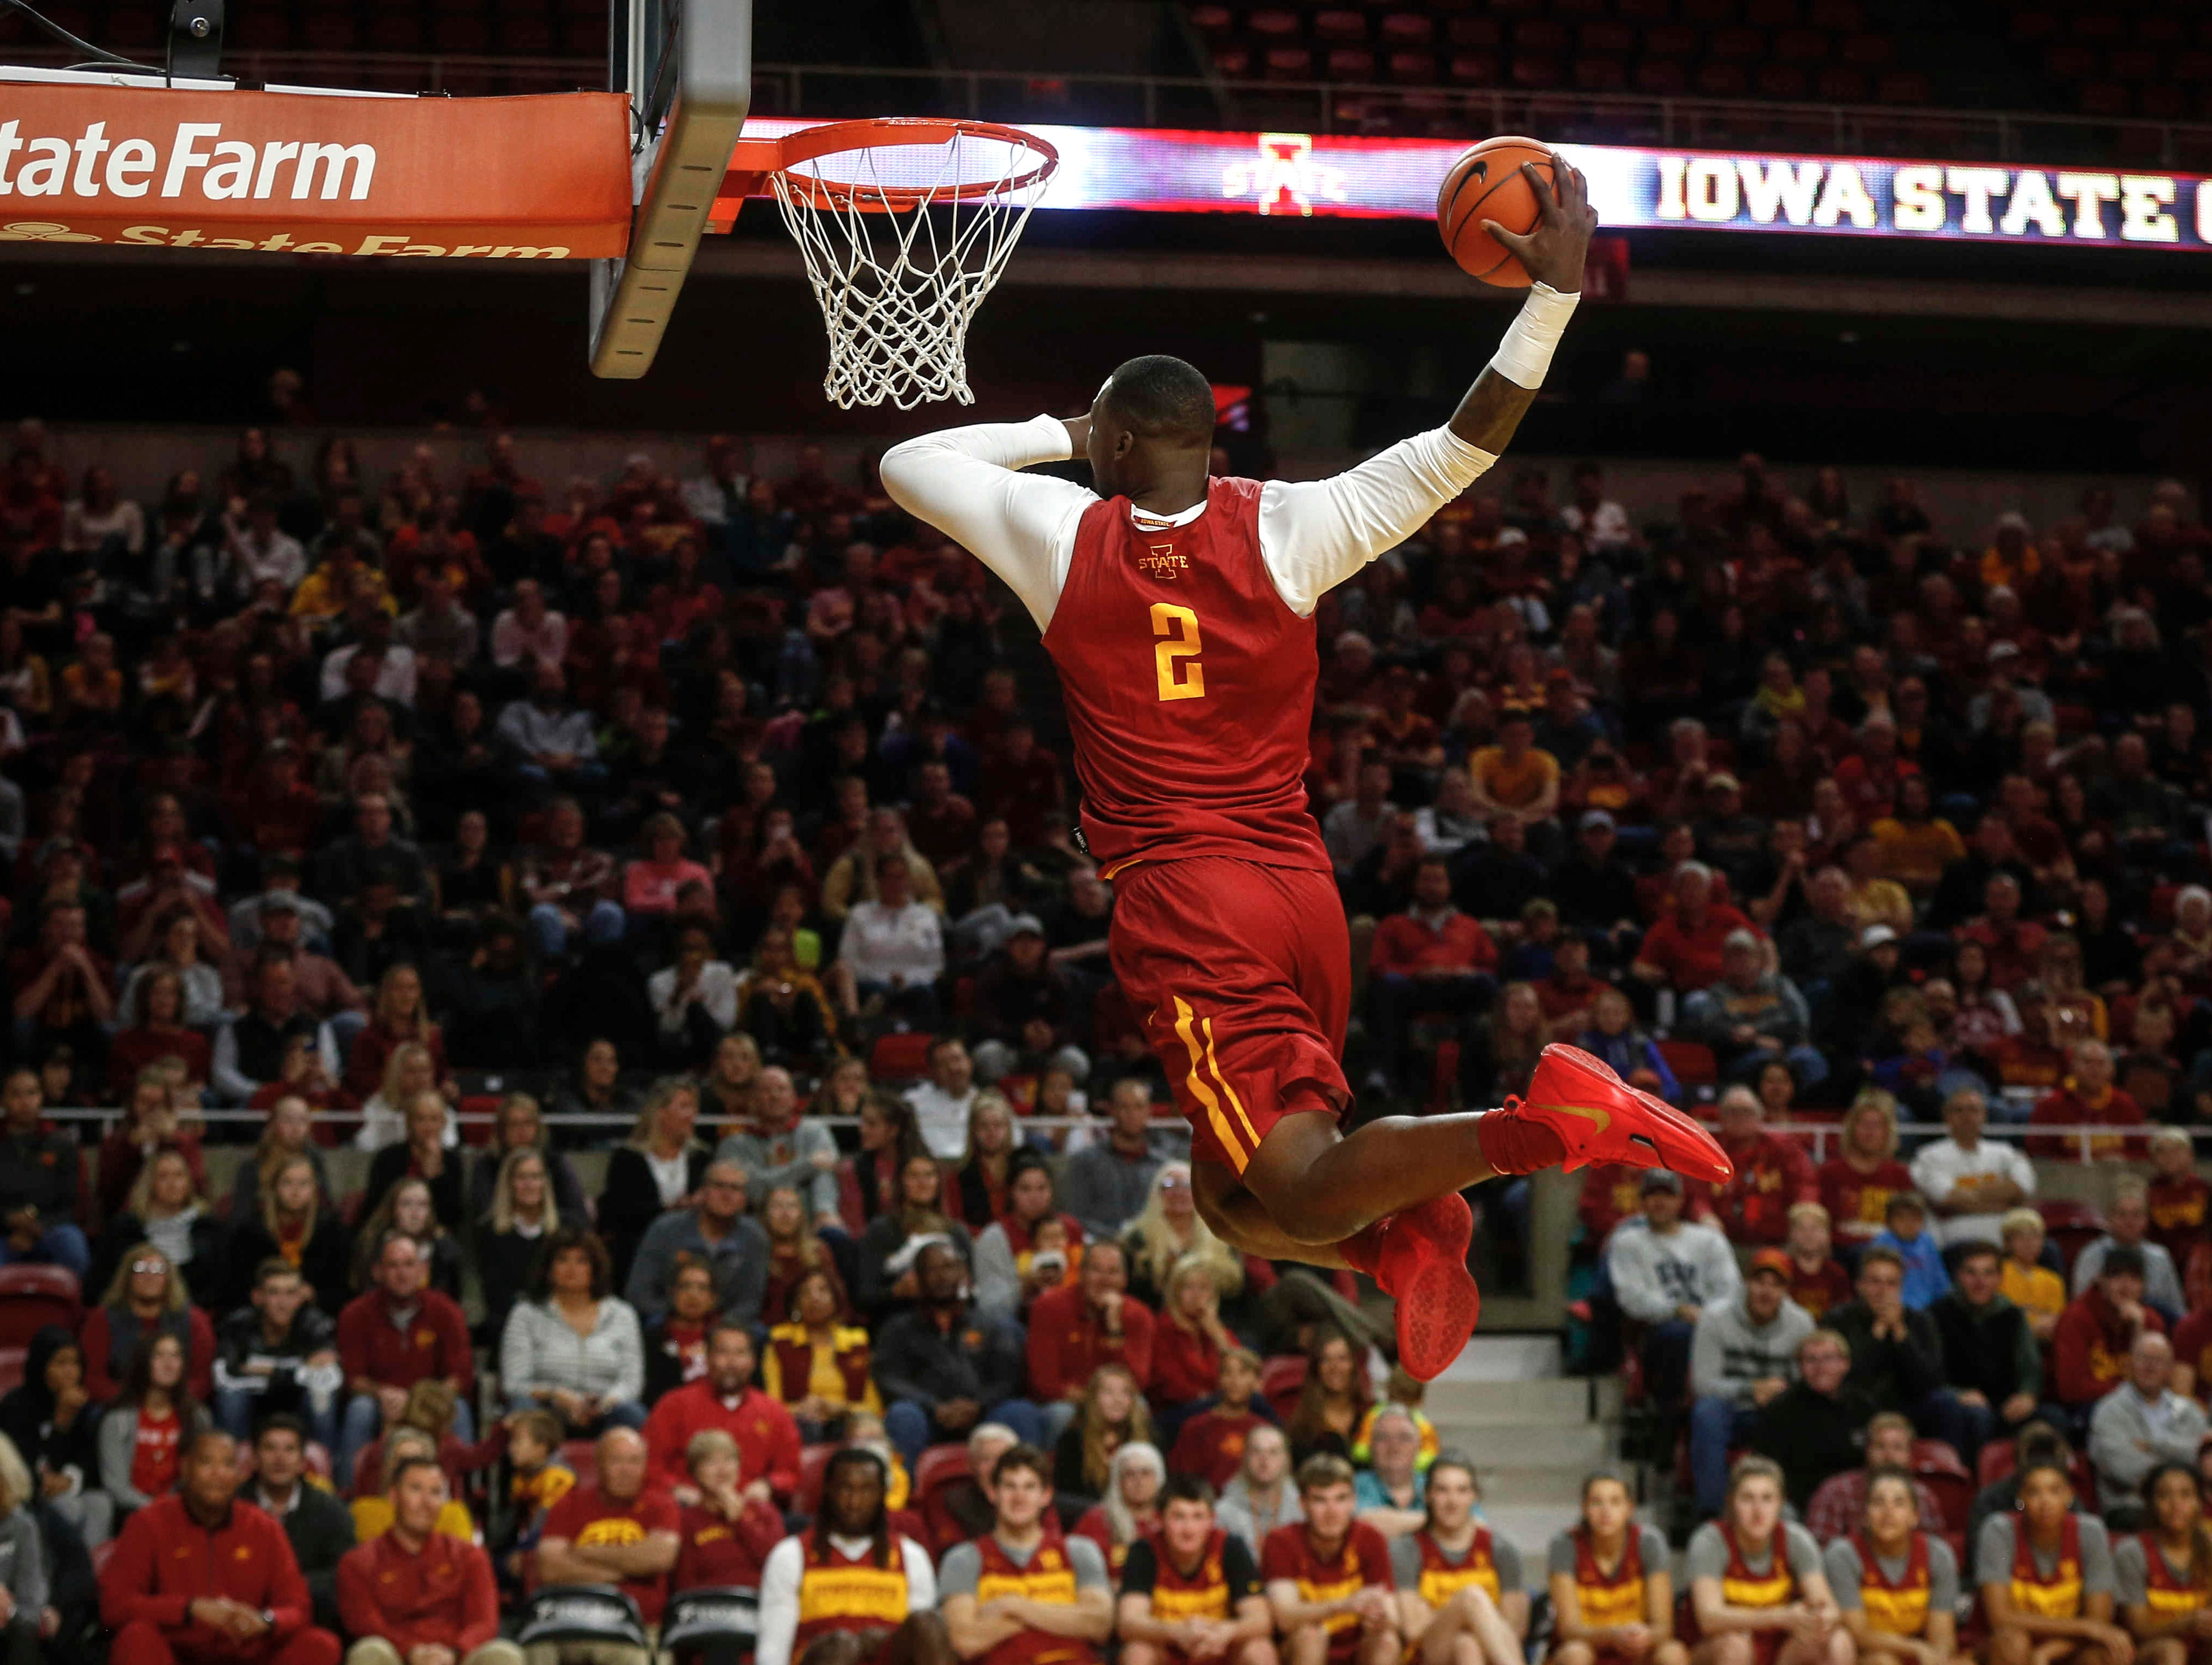 Iowa State's Cameron Lard dabs as he dunks the ball during the slam dunk competition during Hilton Madness at Hilton Coliseum in Ames on Friday, Oct. 12, 2018.